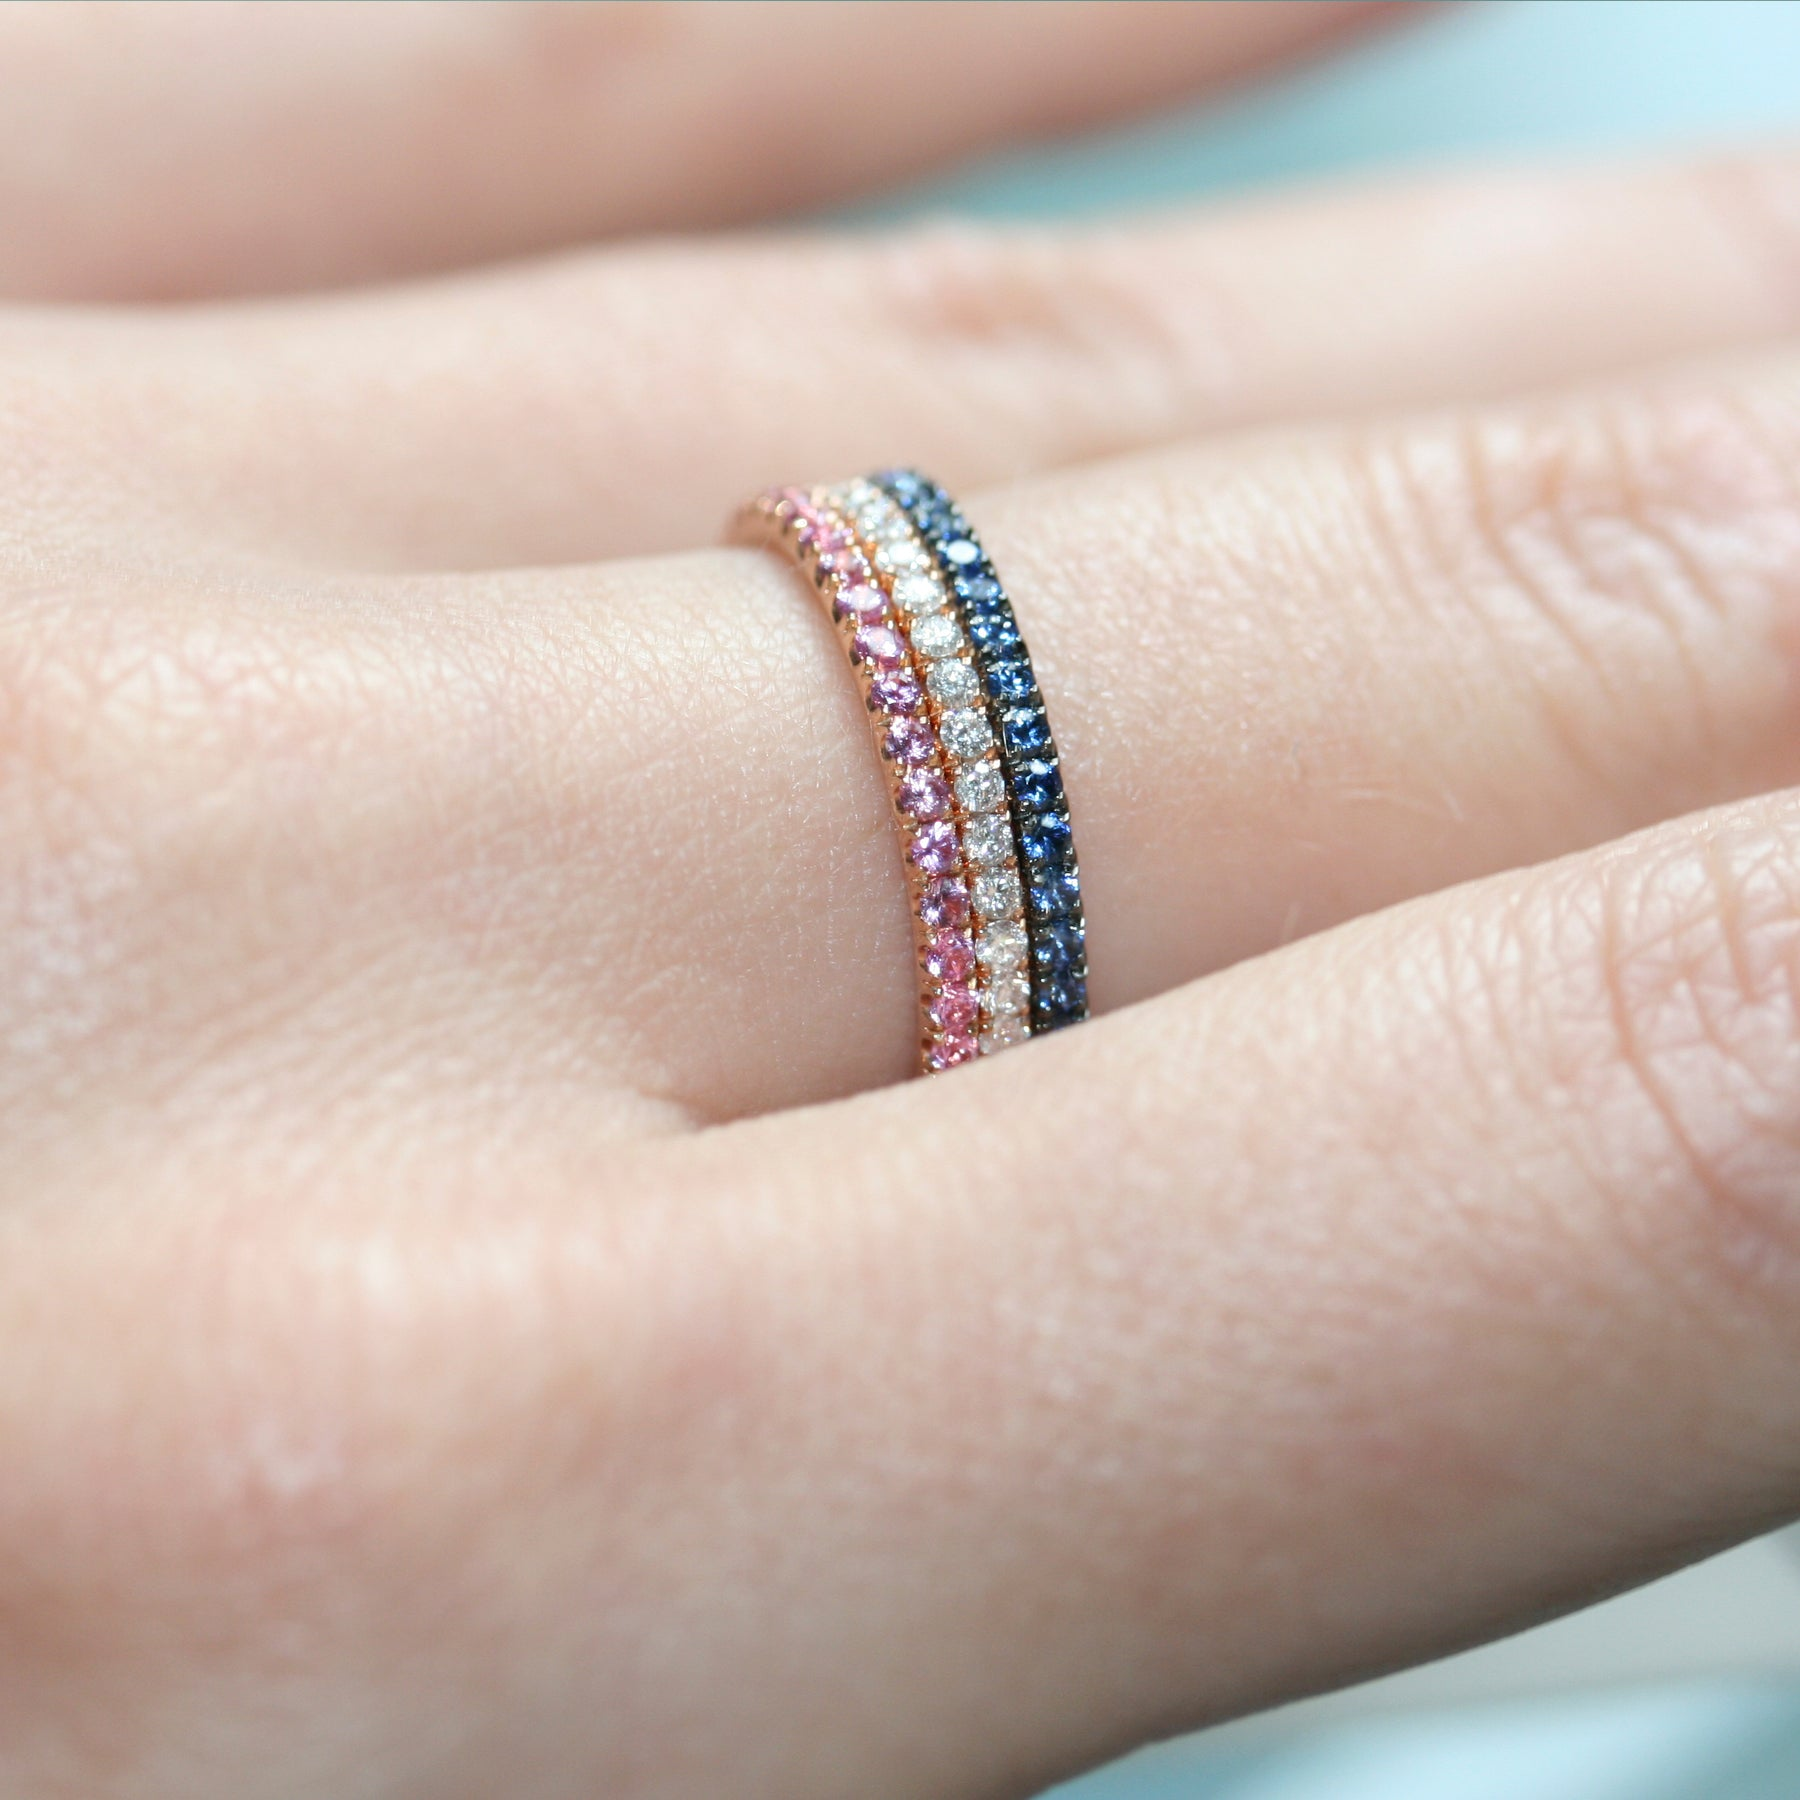 The Duchess eternity ring stack